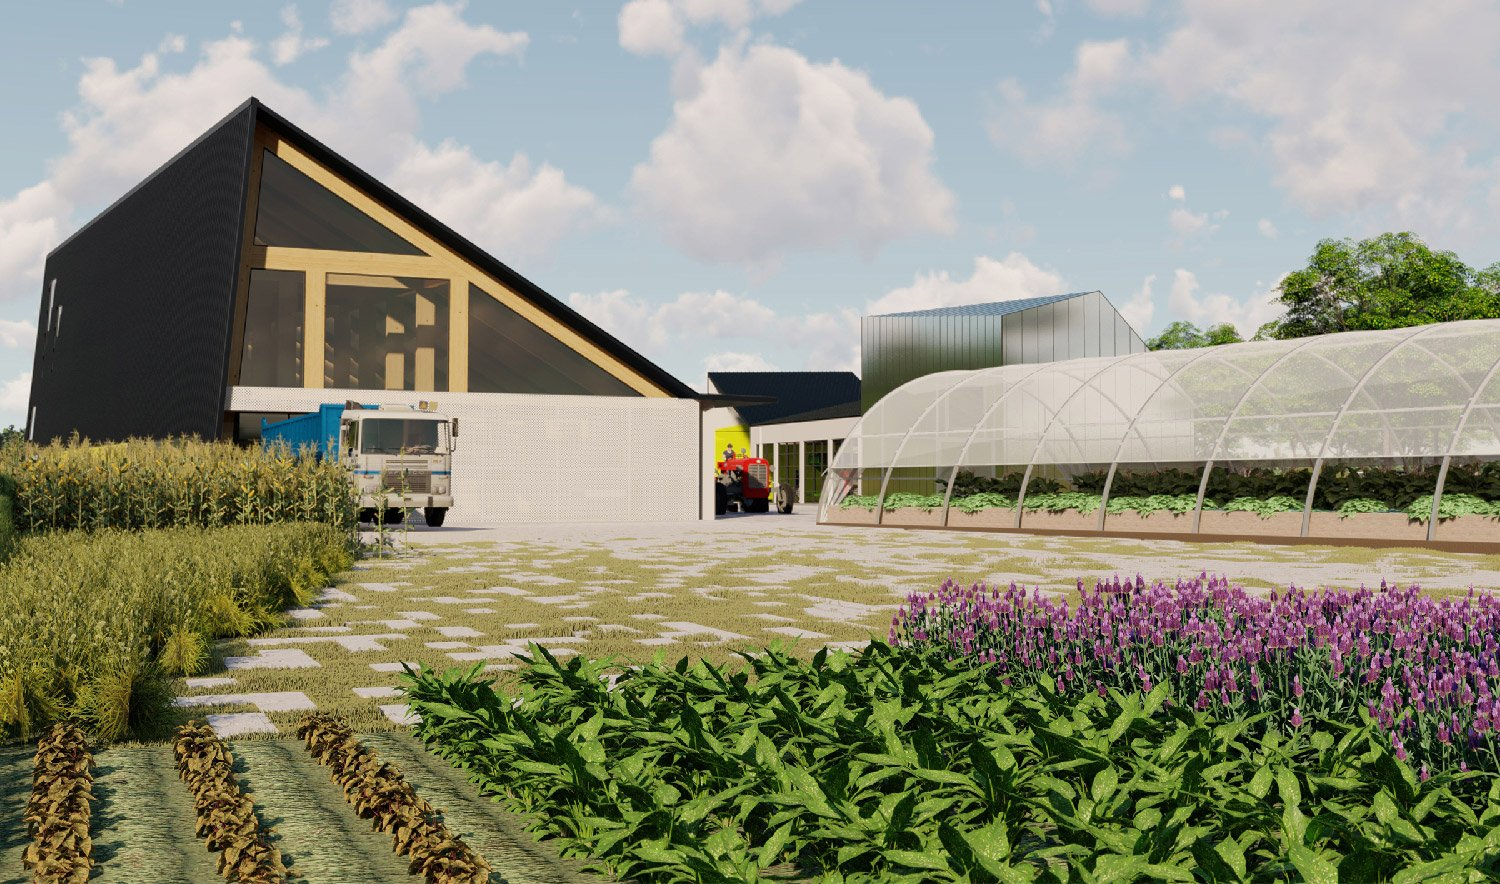 The Center articulates the working farm as a next-generation civic infrastructure. University of Arkansas Community Design Center